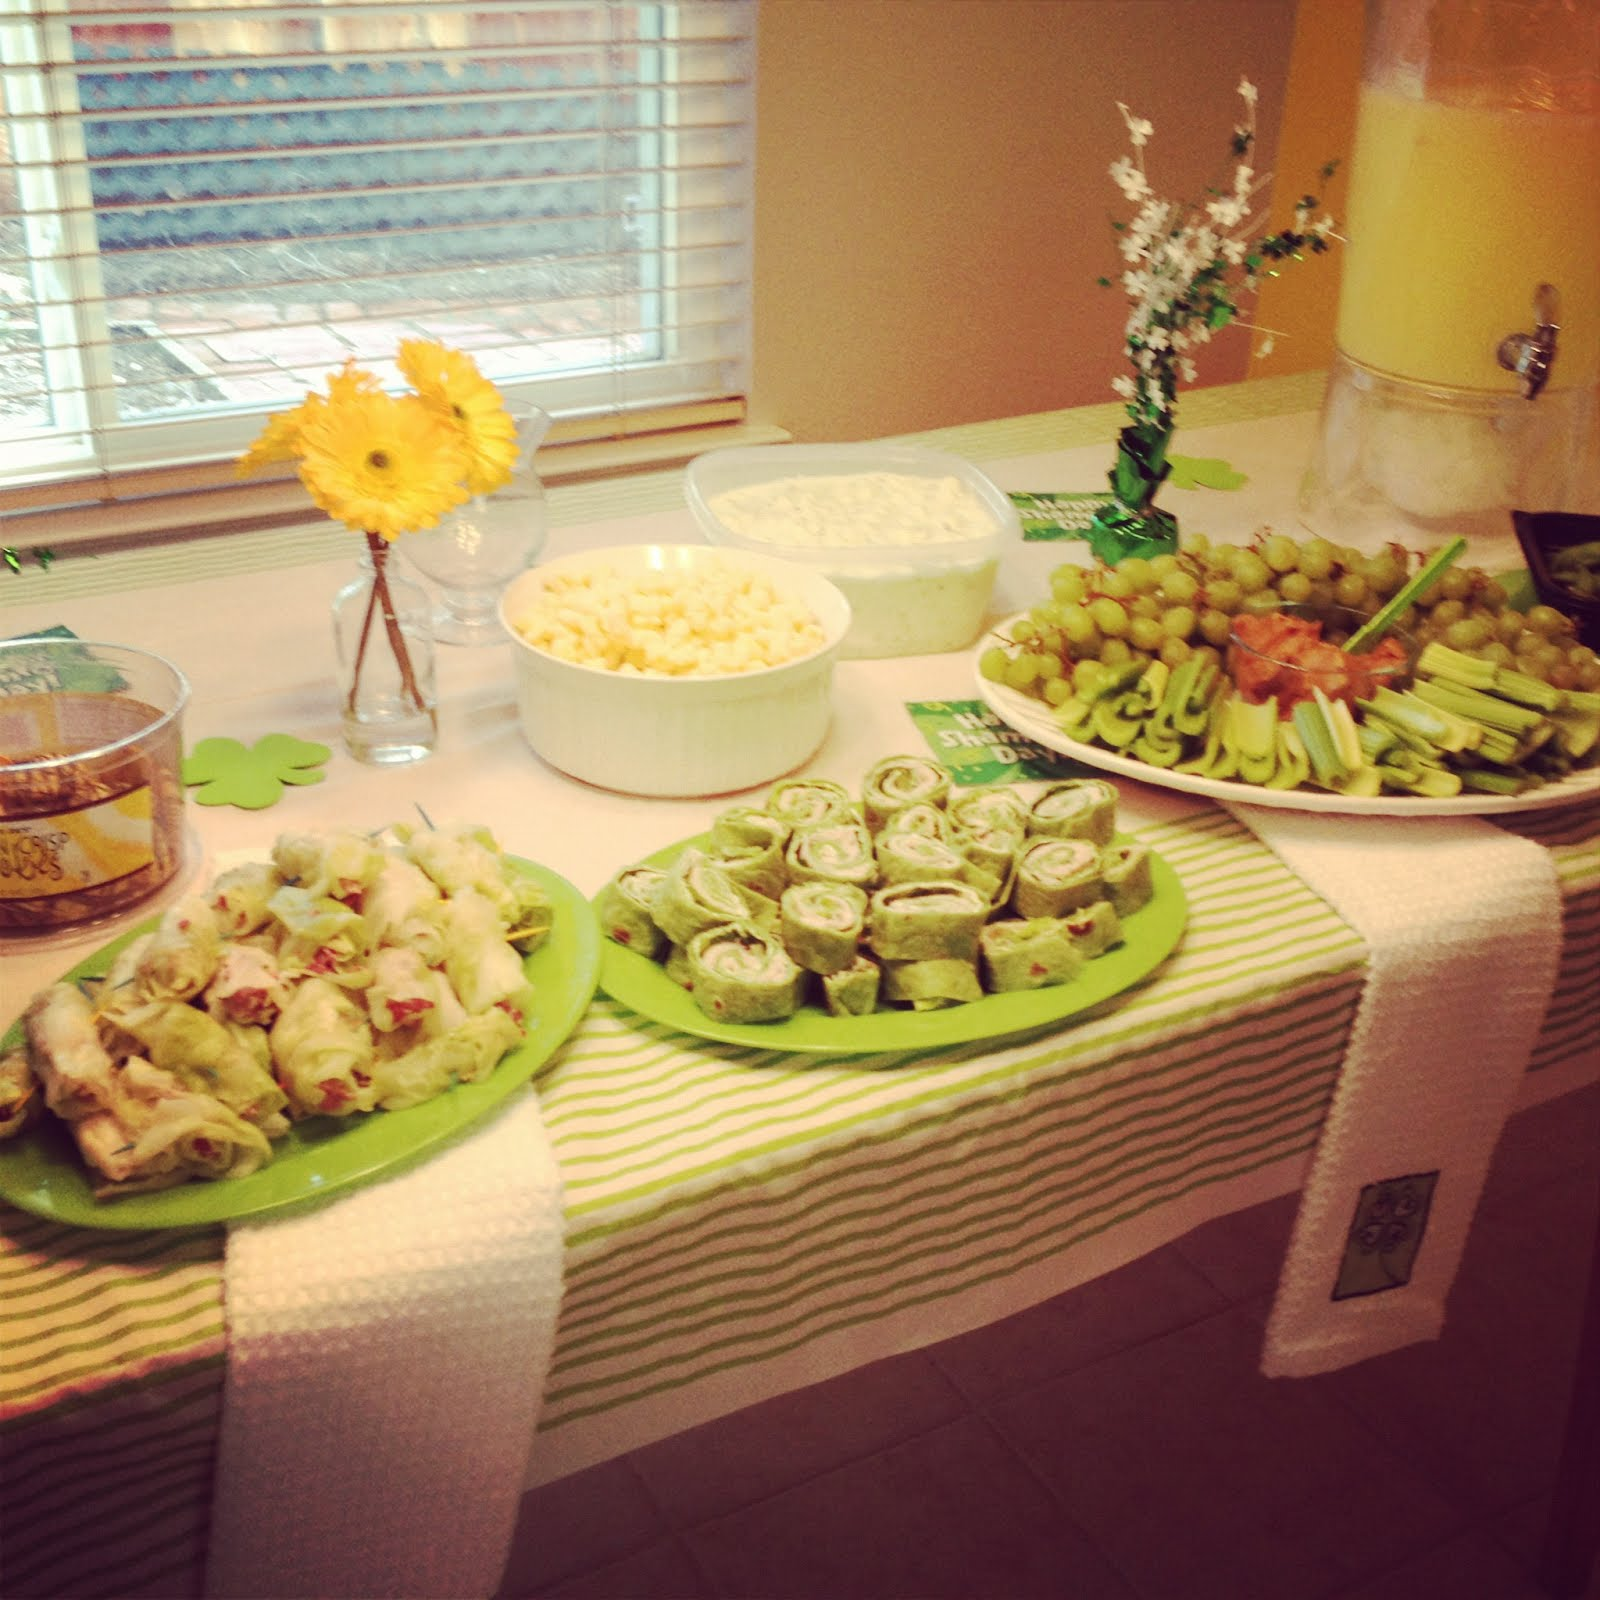 Housewarming ideas food for Housewarming food ideas